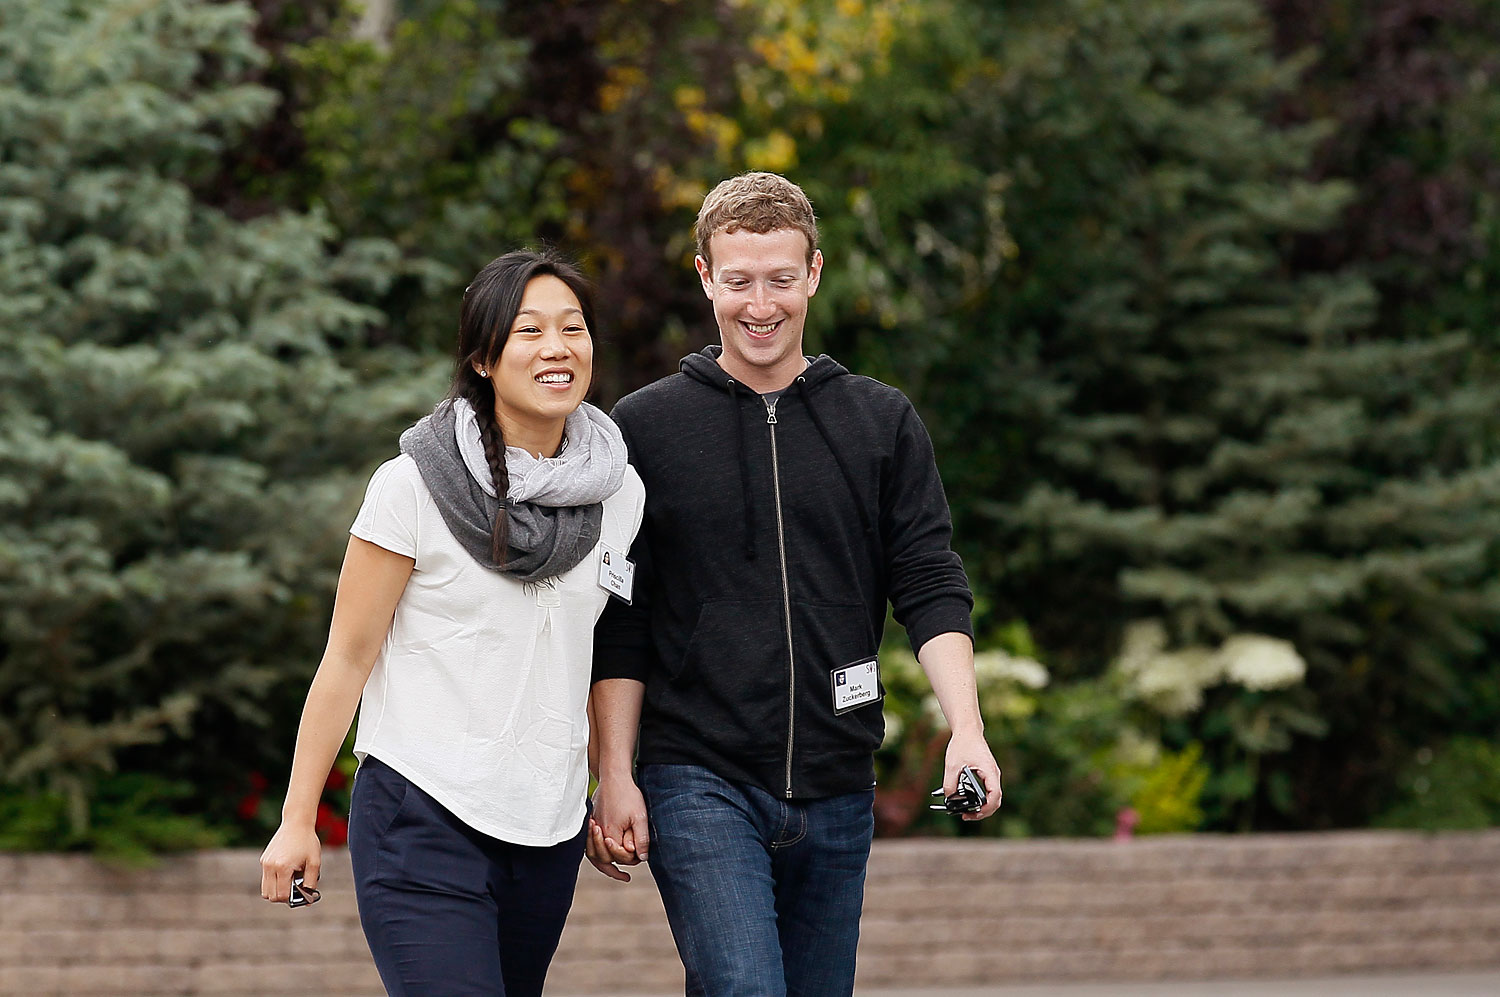 Facebook CEO Mark Zuckerberg walks with his wife Priscilla Chan at the annual Allen and Co. conference at the Sun Valley, Idaho Resort, July 11, 2013.